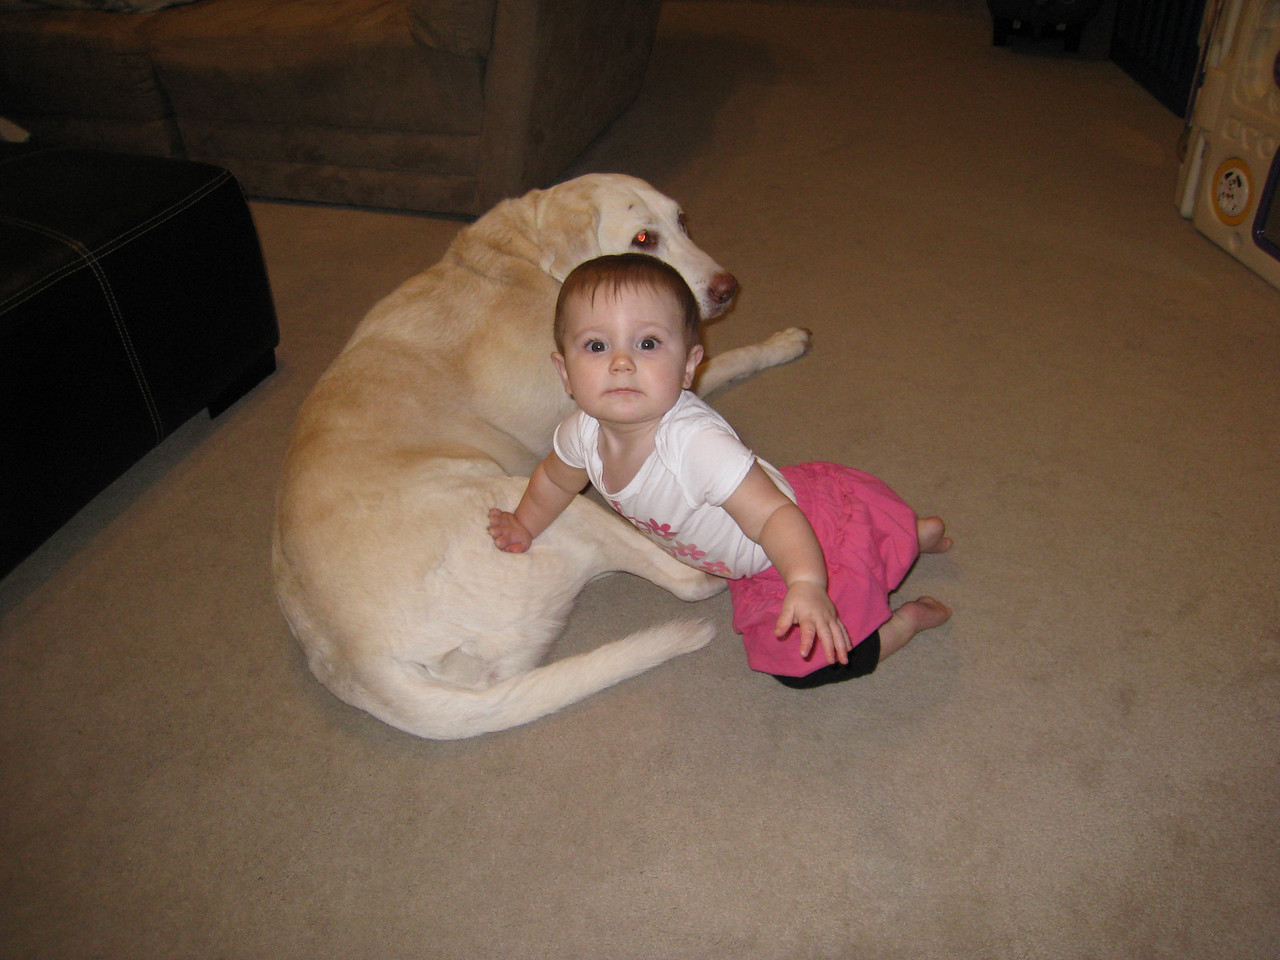 Laney leaning on Murphy - January 27, 2011